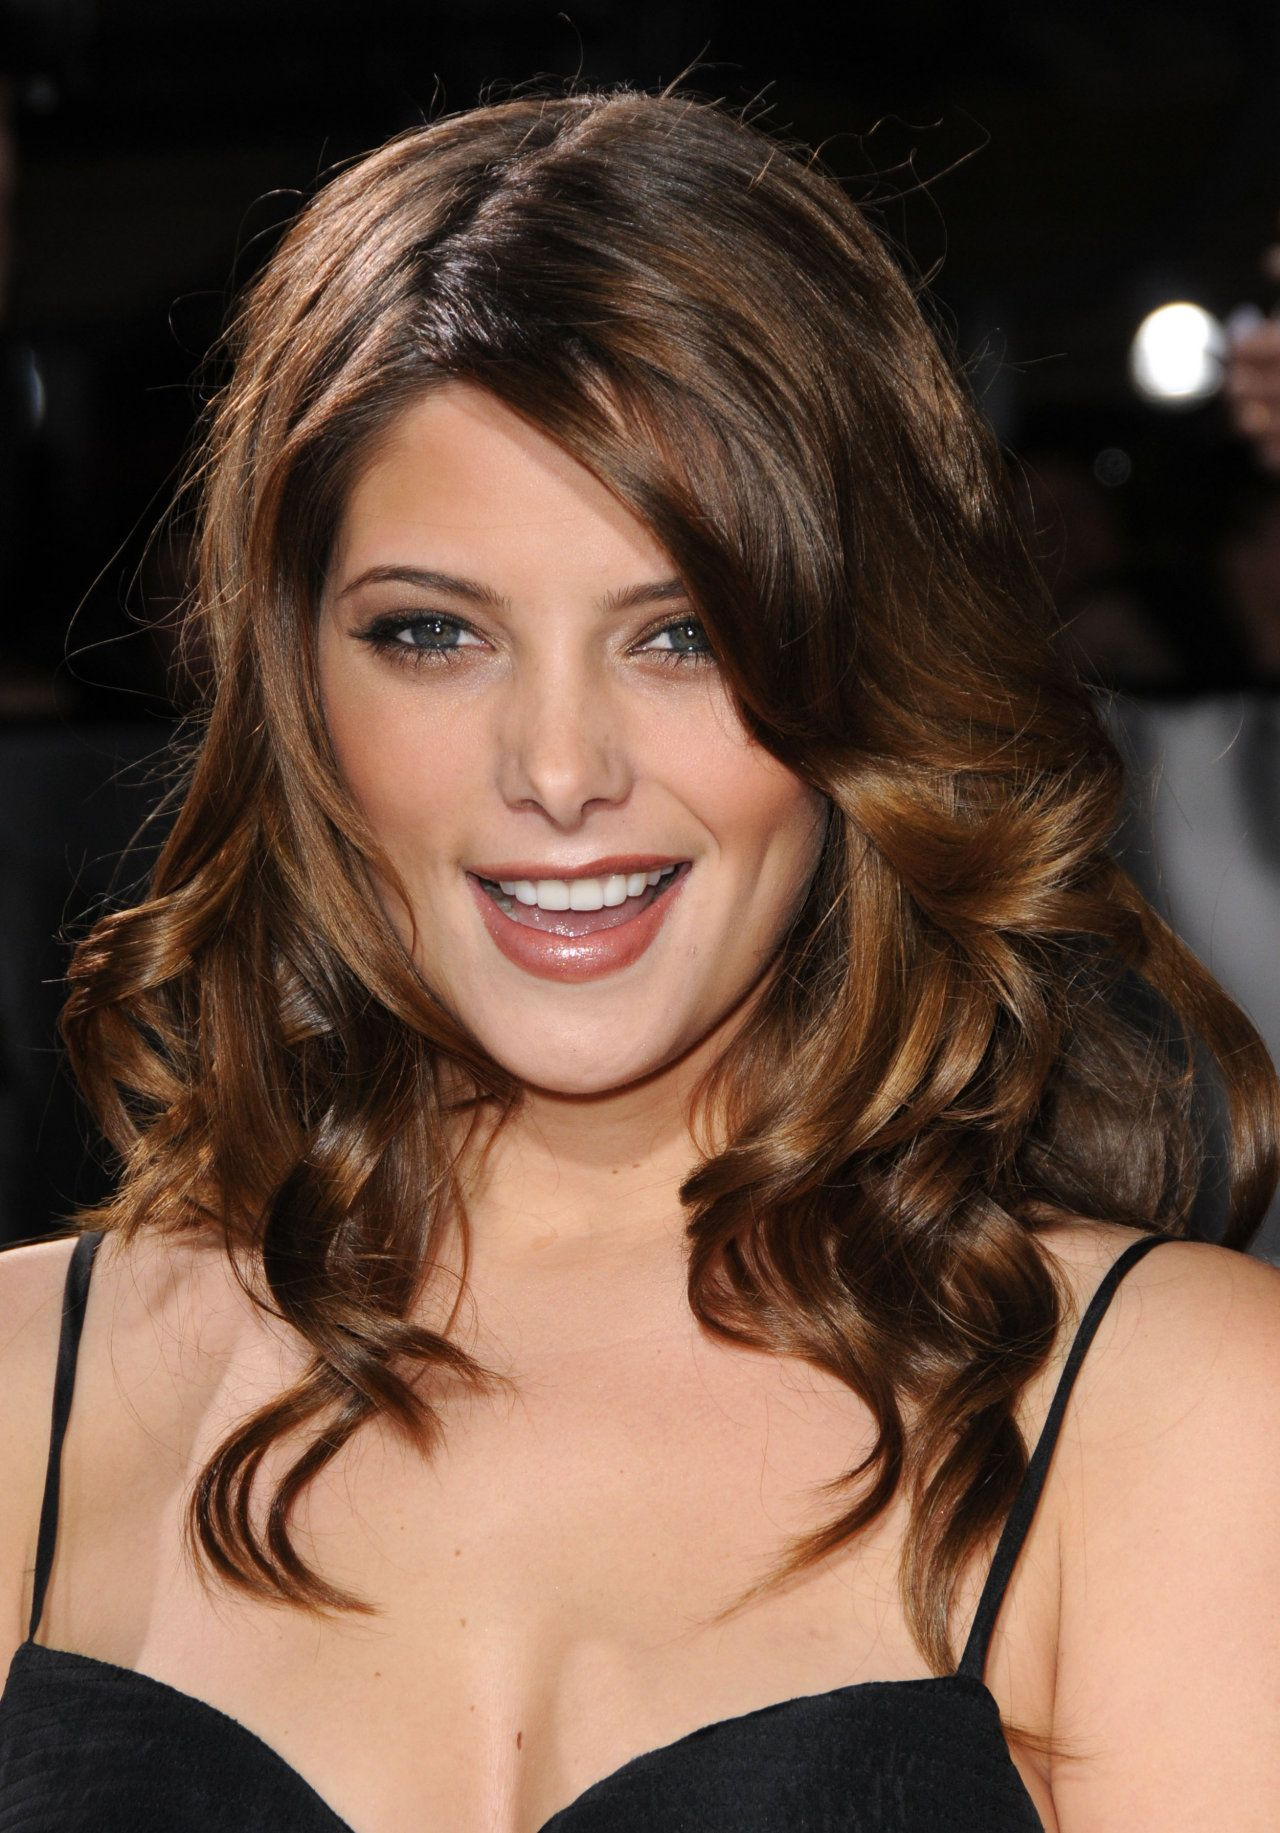 Ashley Greene Thin Pointy nose Makeup Morgue